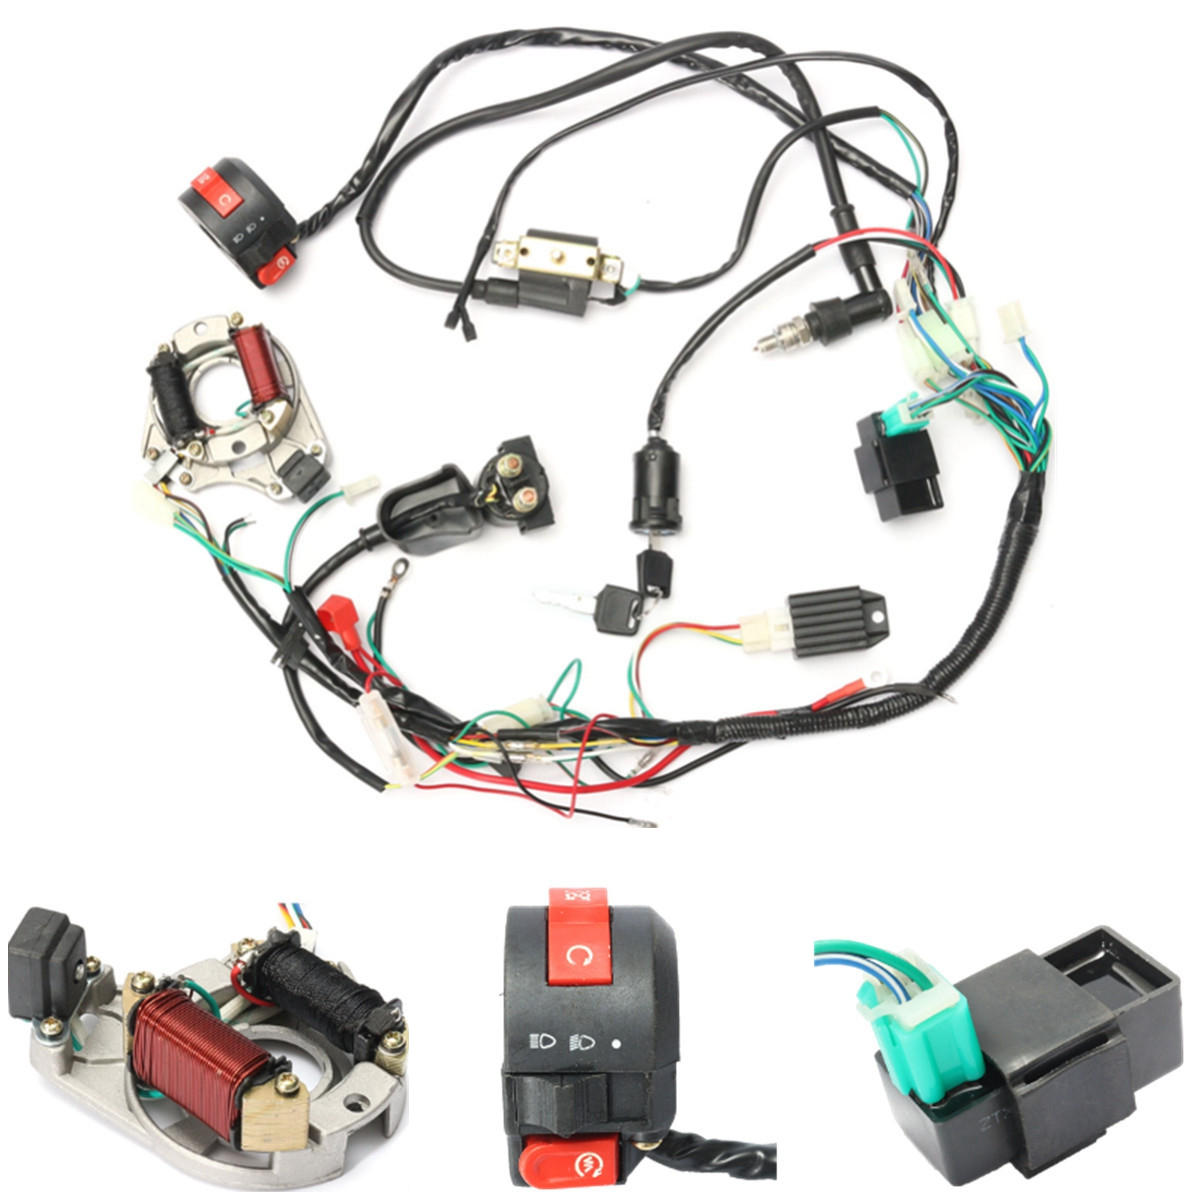 hight resolution of 50cc 70cc 90cc 110cc cdi wire harness assembly wiring kit atv 50cc atv wiring diagram 50cc